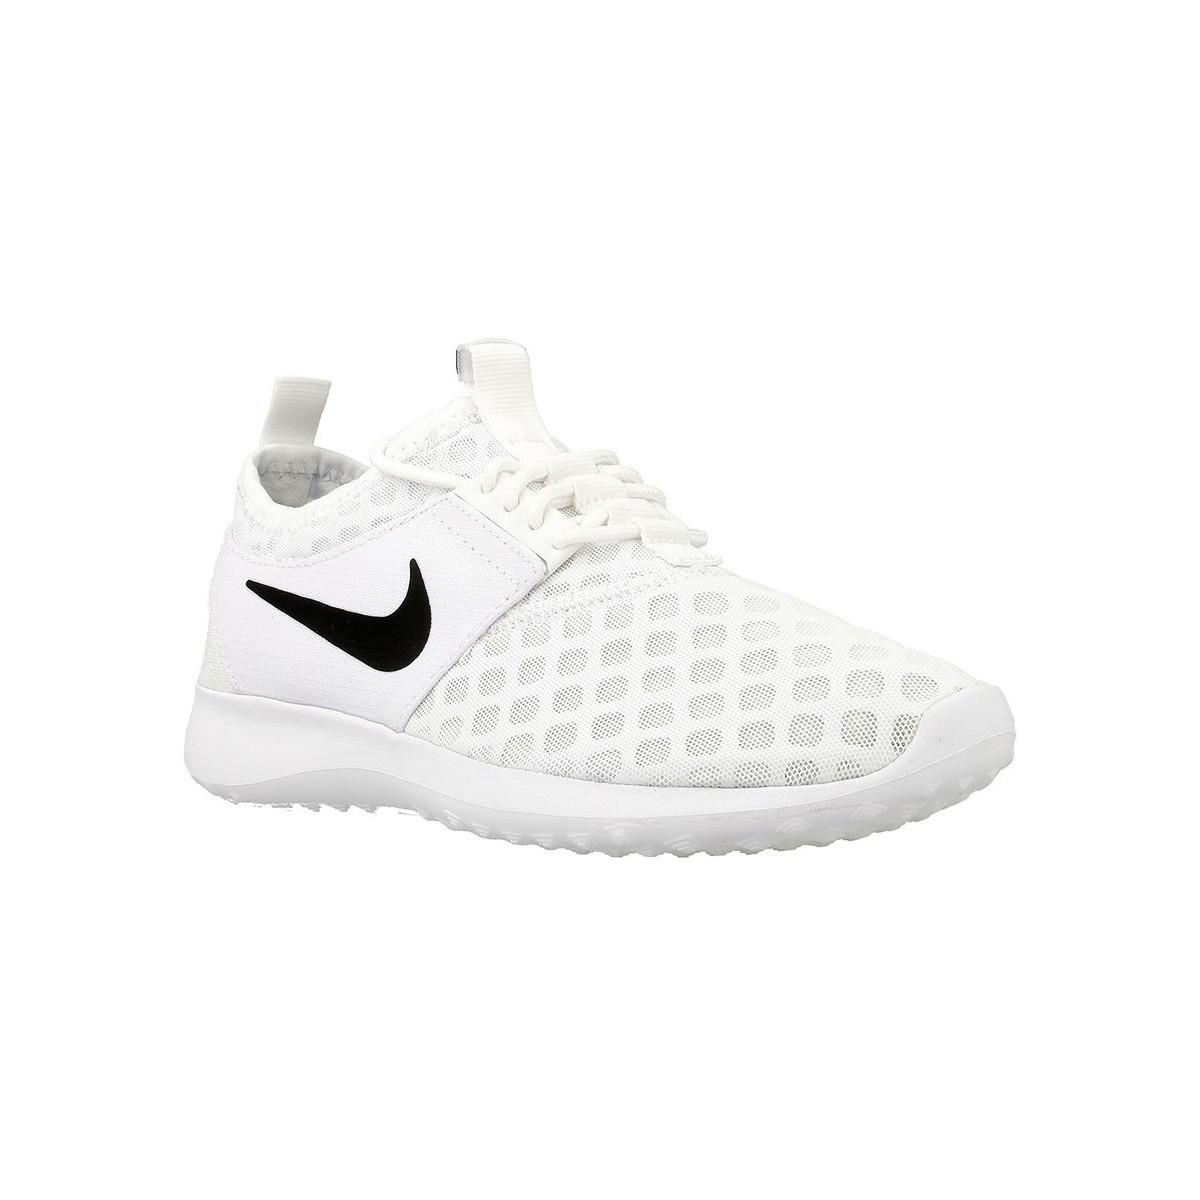 52ca7f5fba9c9 Nike Wmns Juvenate Women s Shoes (trainers) In White in White - Lyst